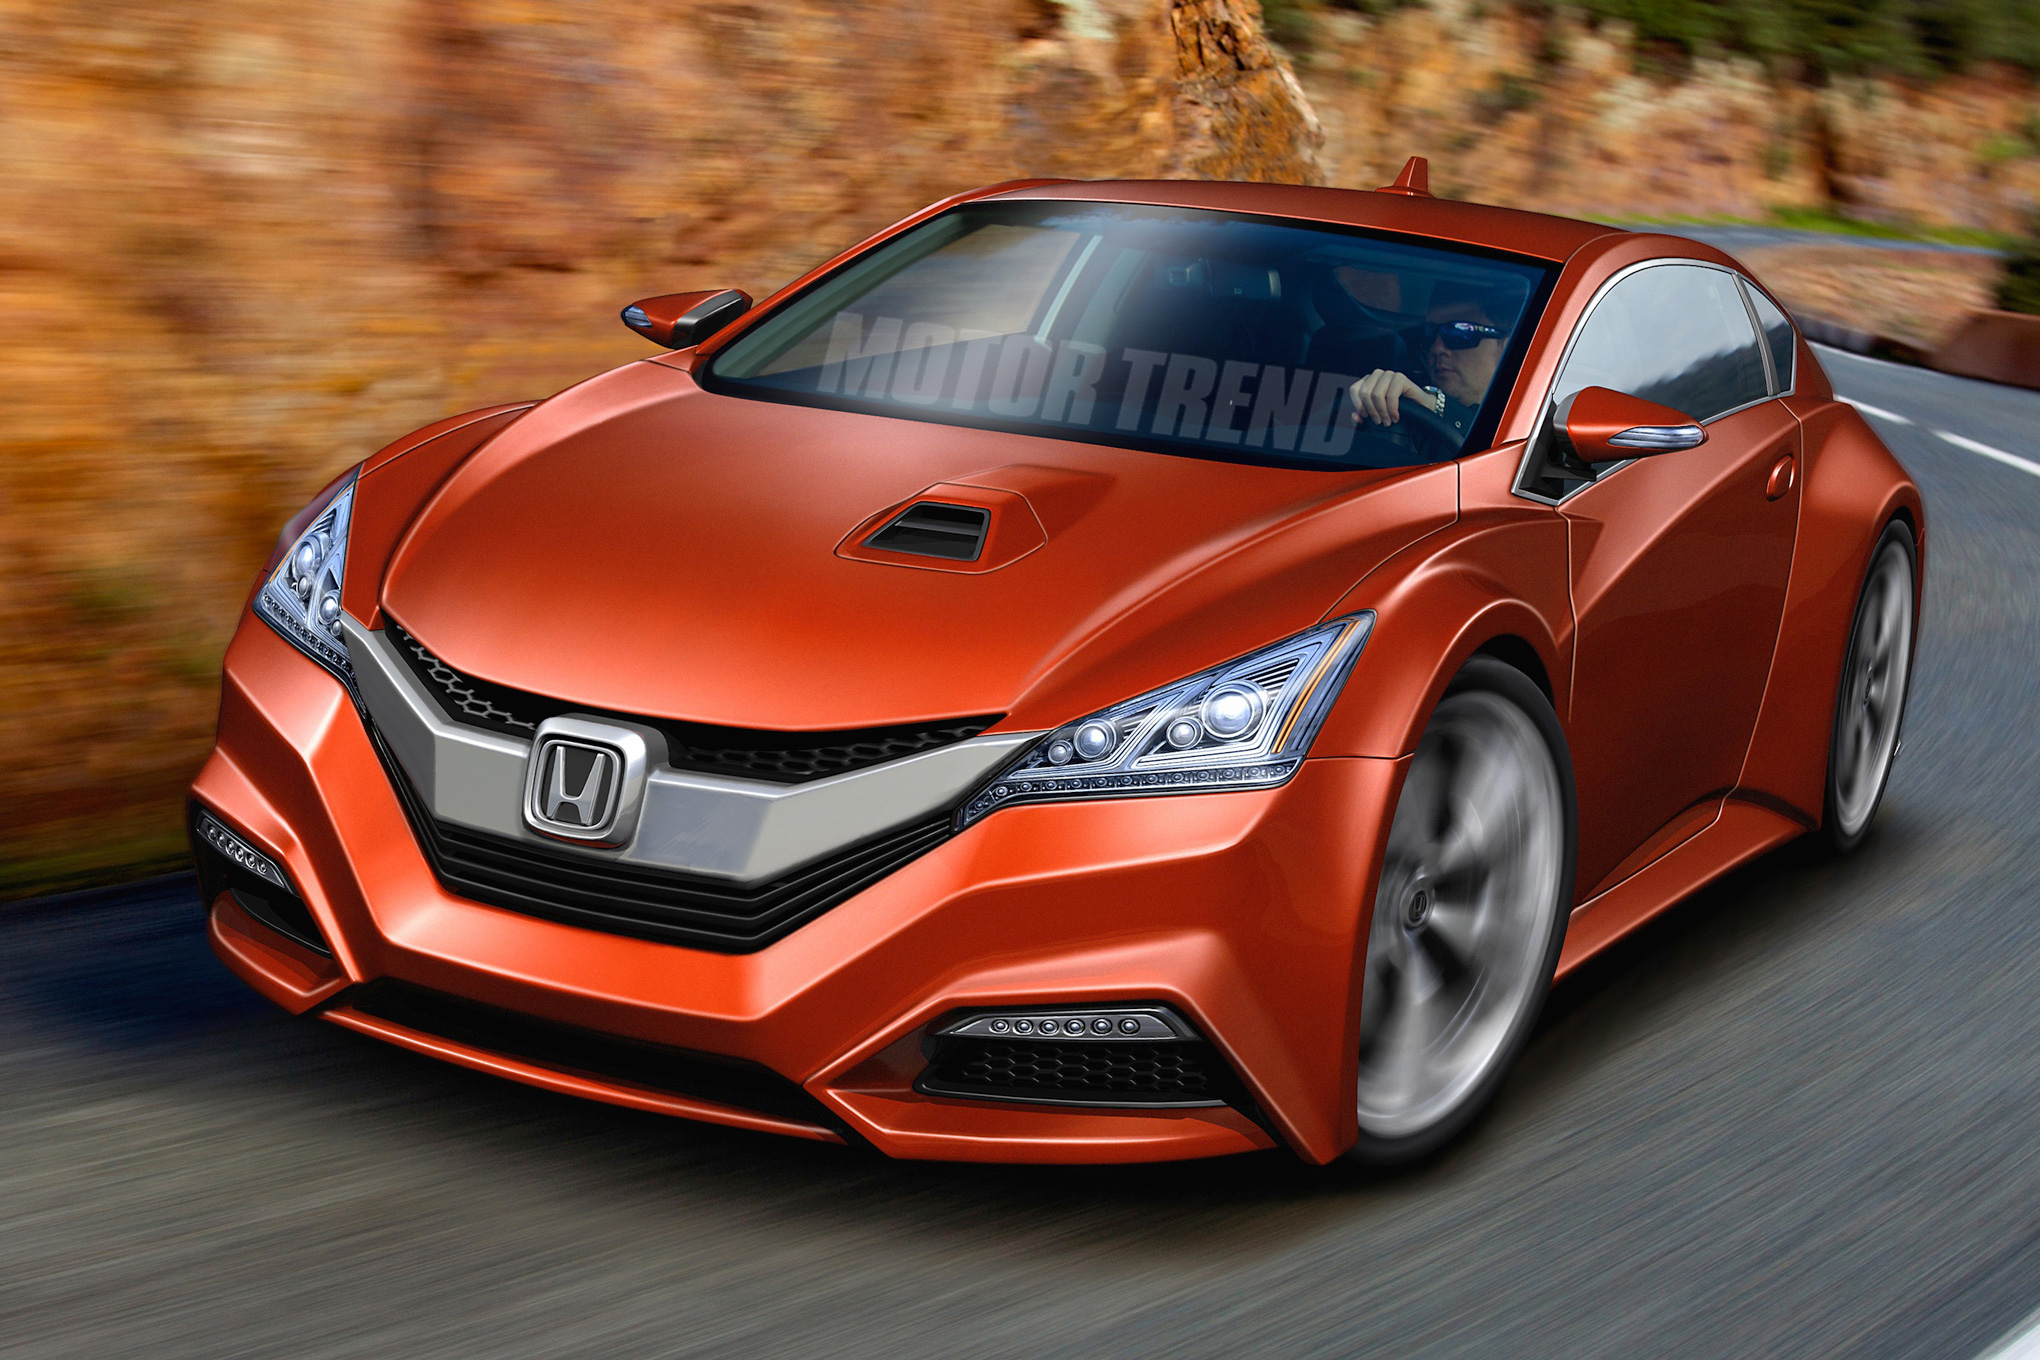 Honda Seems Serious About New CR Z To Fight BRZ FR S